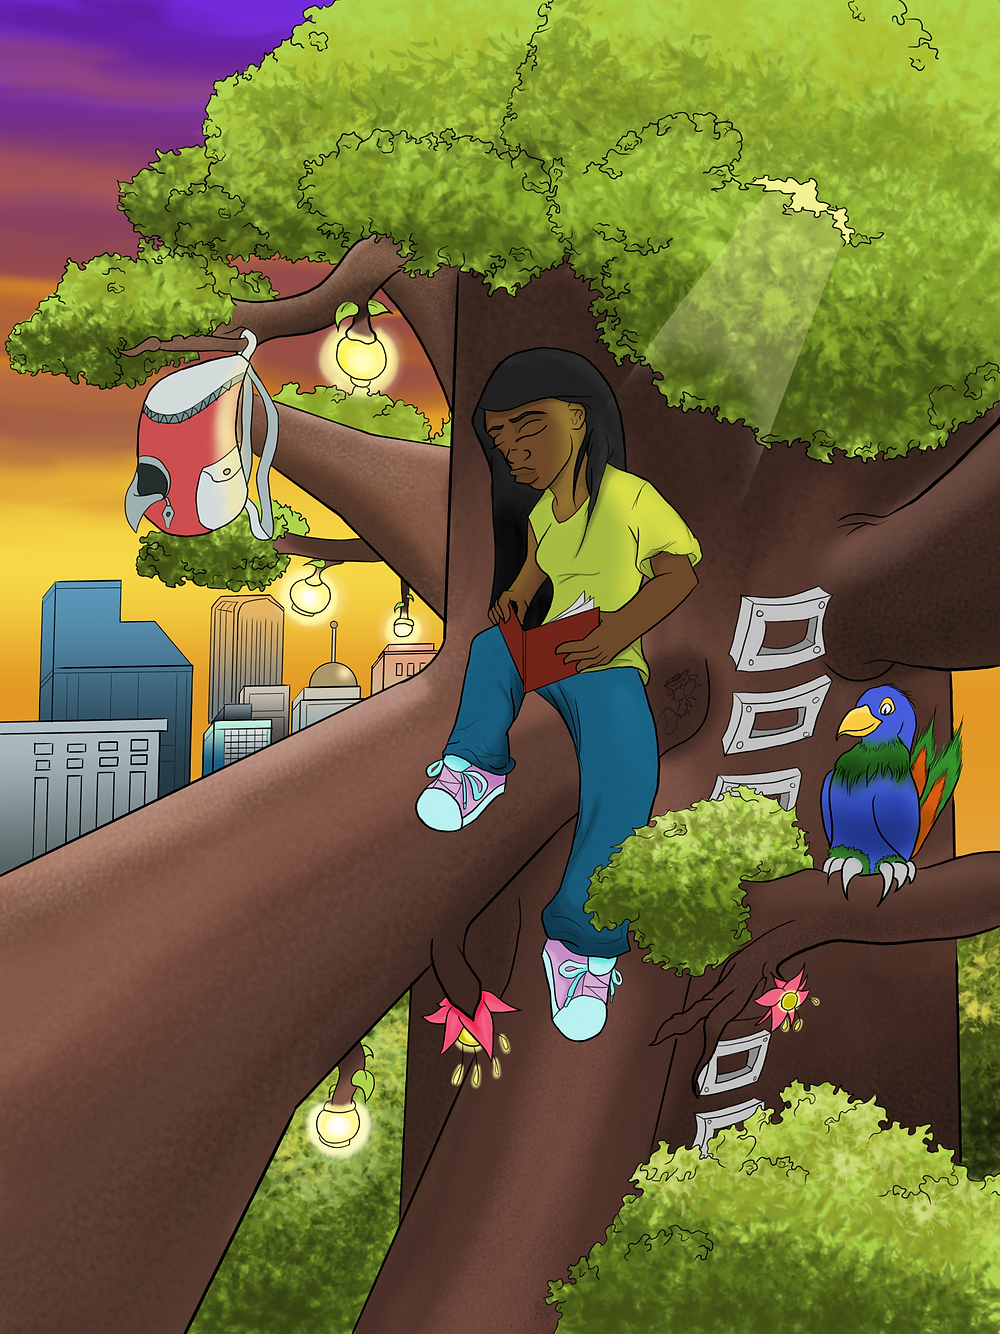 Magic tree: This picture was one of the first digital pieces I've ever made. Prior to this, all of what I drew was on spiral notebook I kept in my backpack in high school. I always stayed in the library reading and drawing so I wanted to draw something magical that kind of depicted what I did. The girl is in the tree outside the city enjoying her books in nature. It's similar to how I spent much of my time as well, outside reading or drawing.